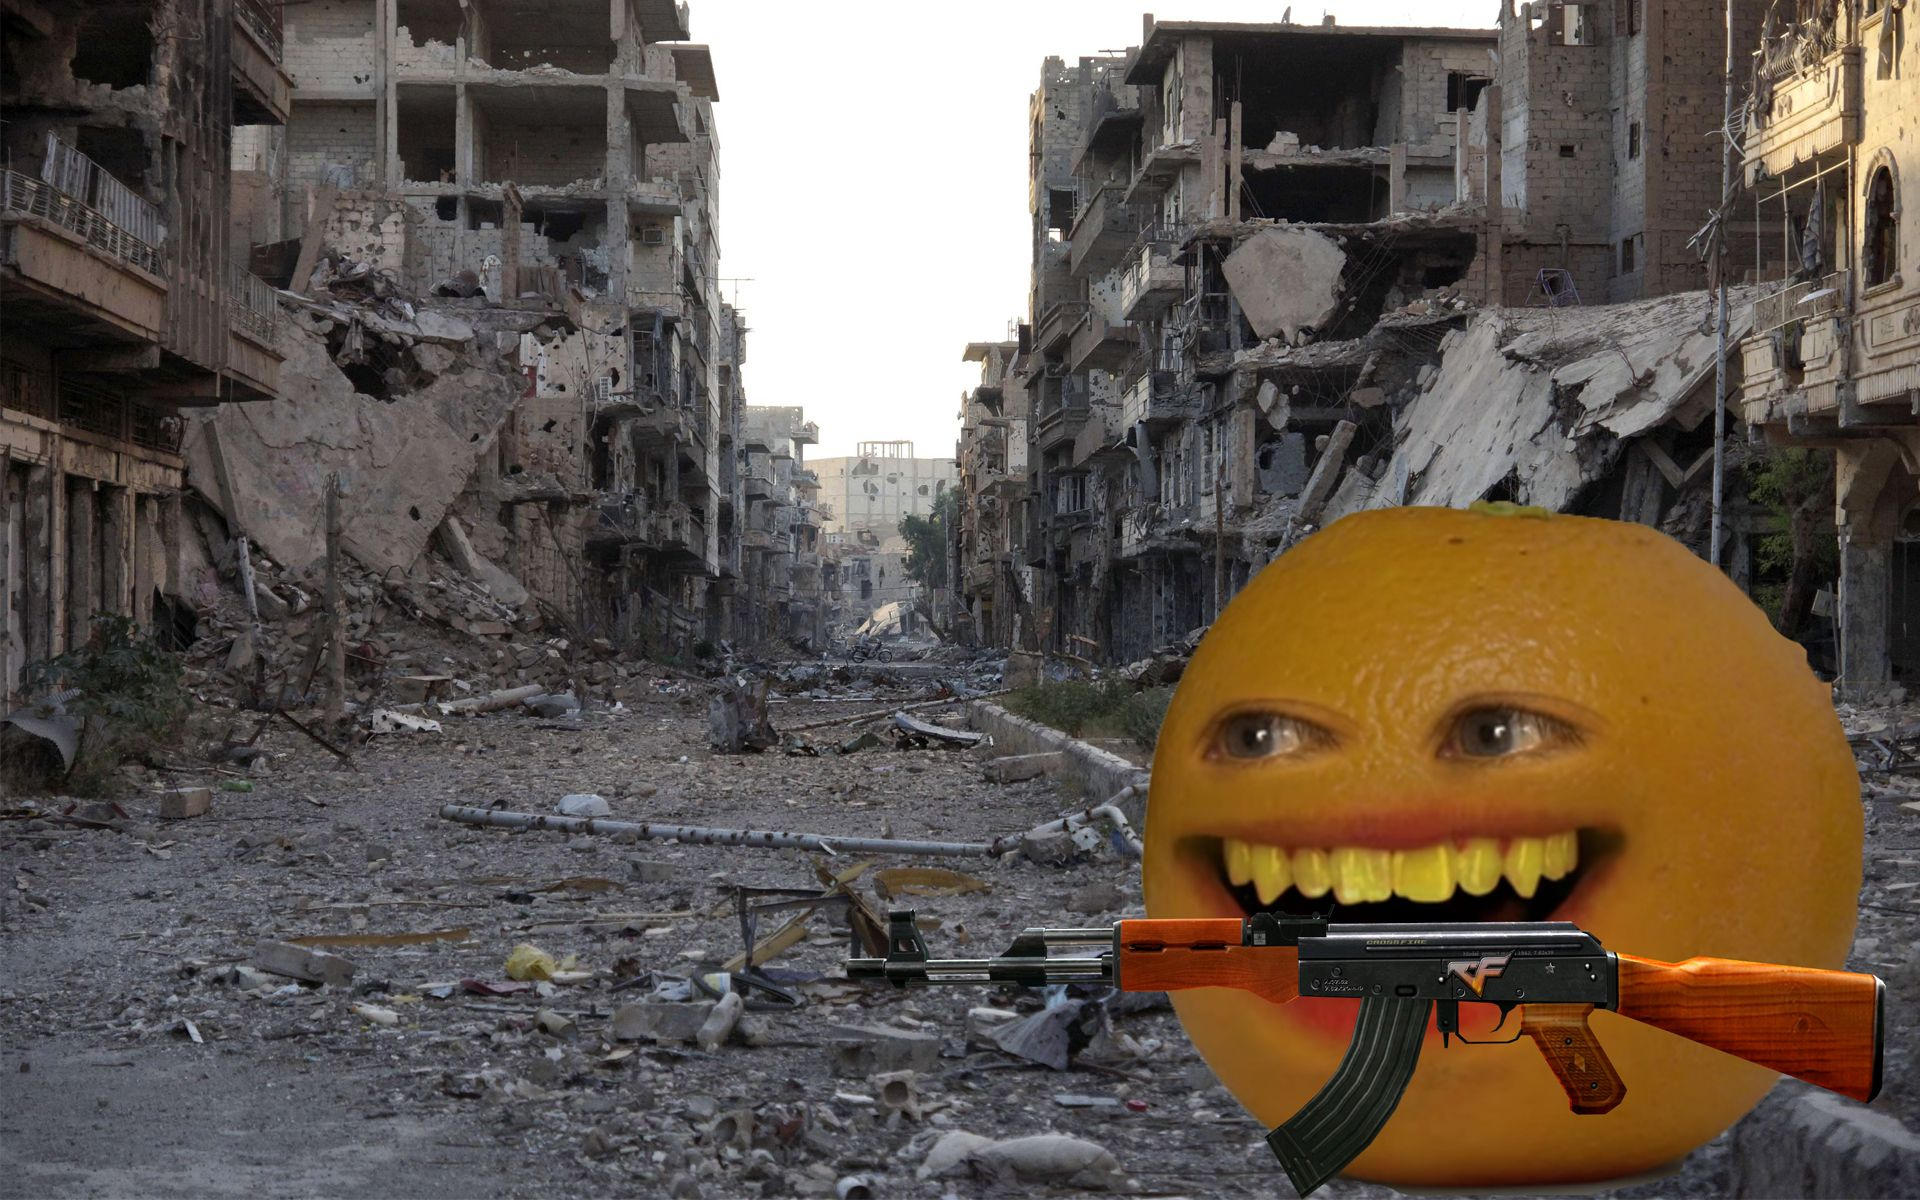 BREAKING: Trump Deploys Annoying Orange To Iran, Violating Geneva Convention And Committing Several War Crimes